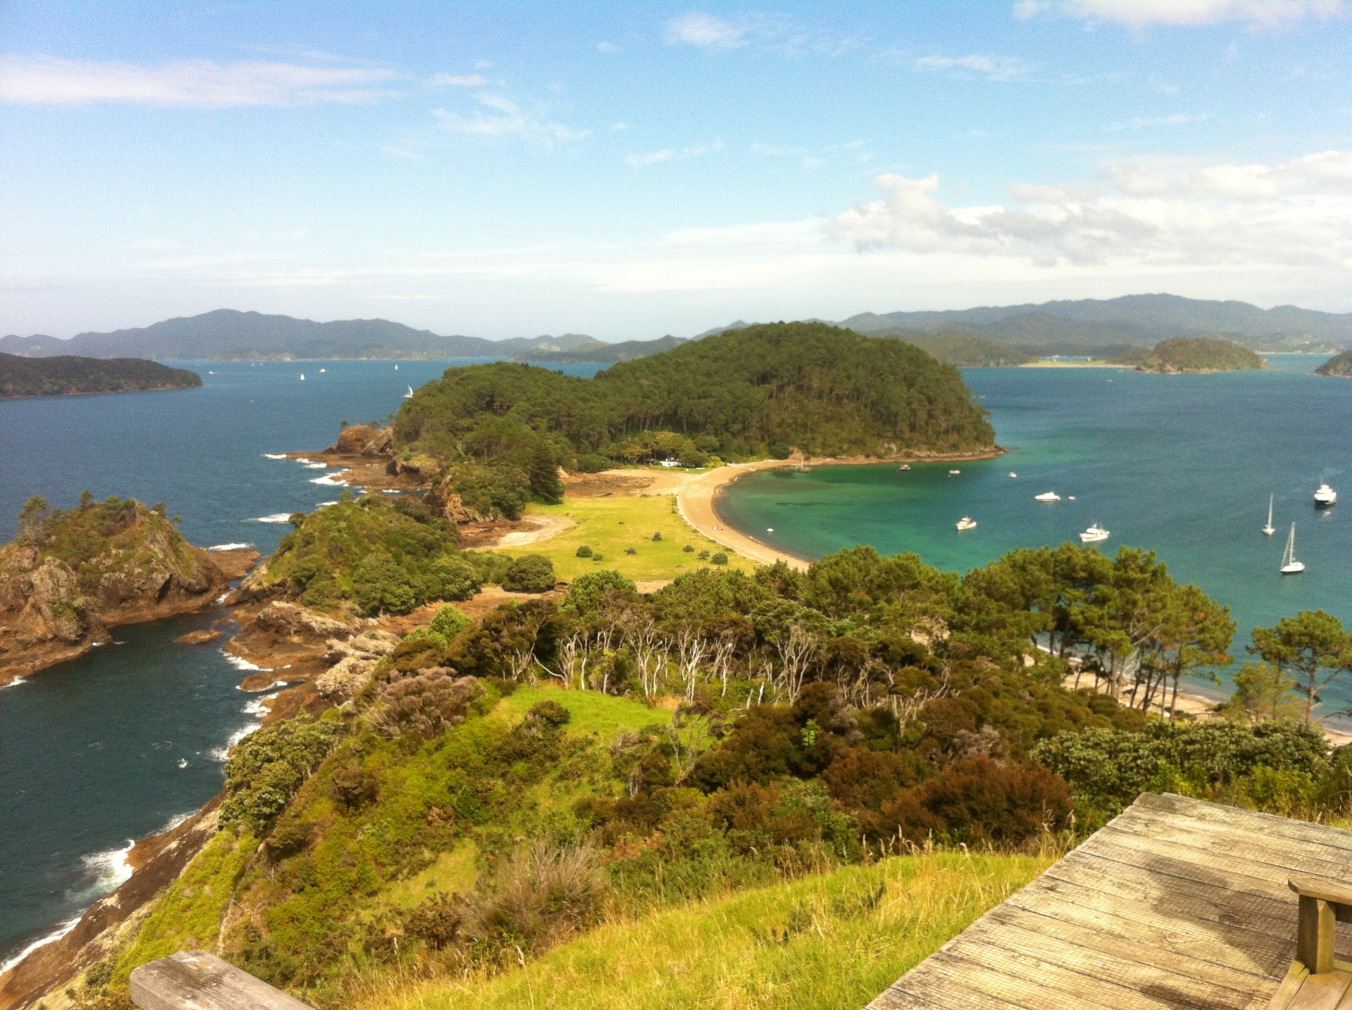 Roberton Island, Bay of Islands where the snorkelling in three large rock pools is amazing